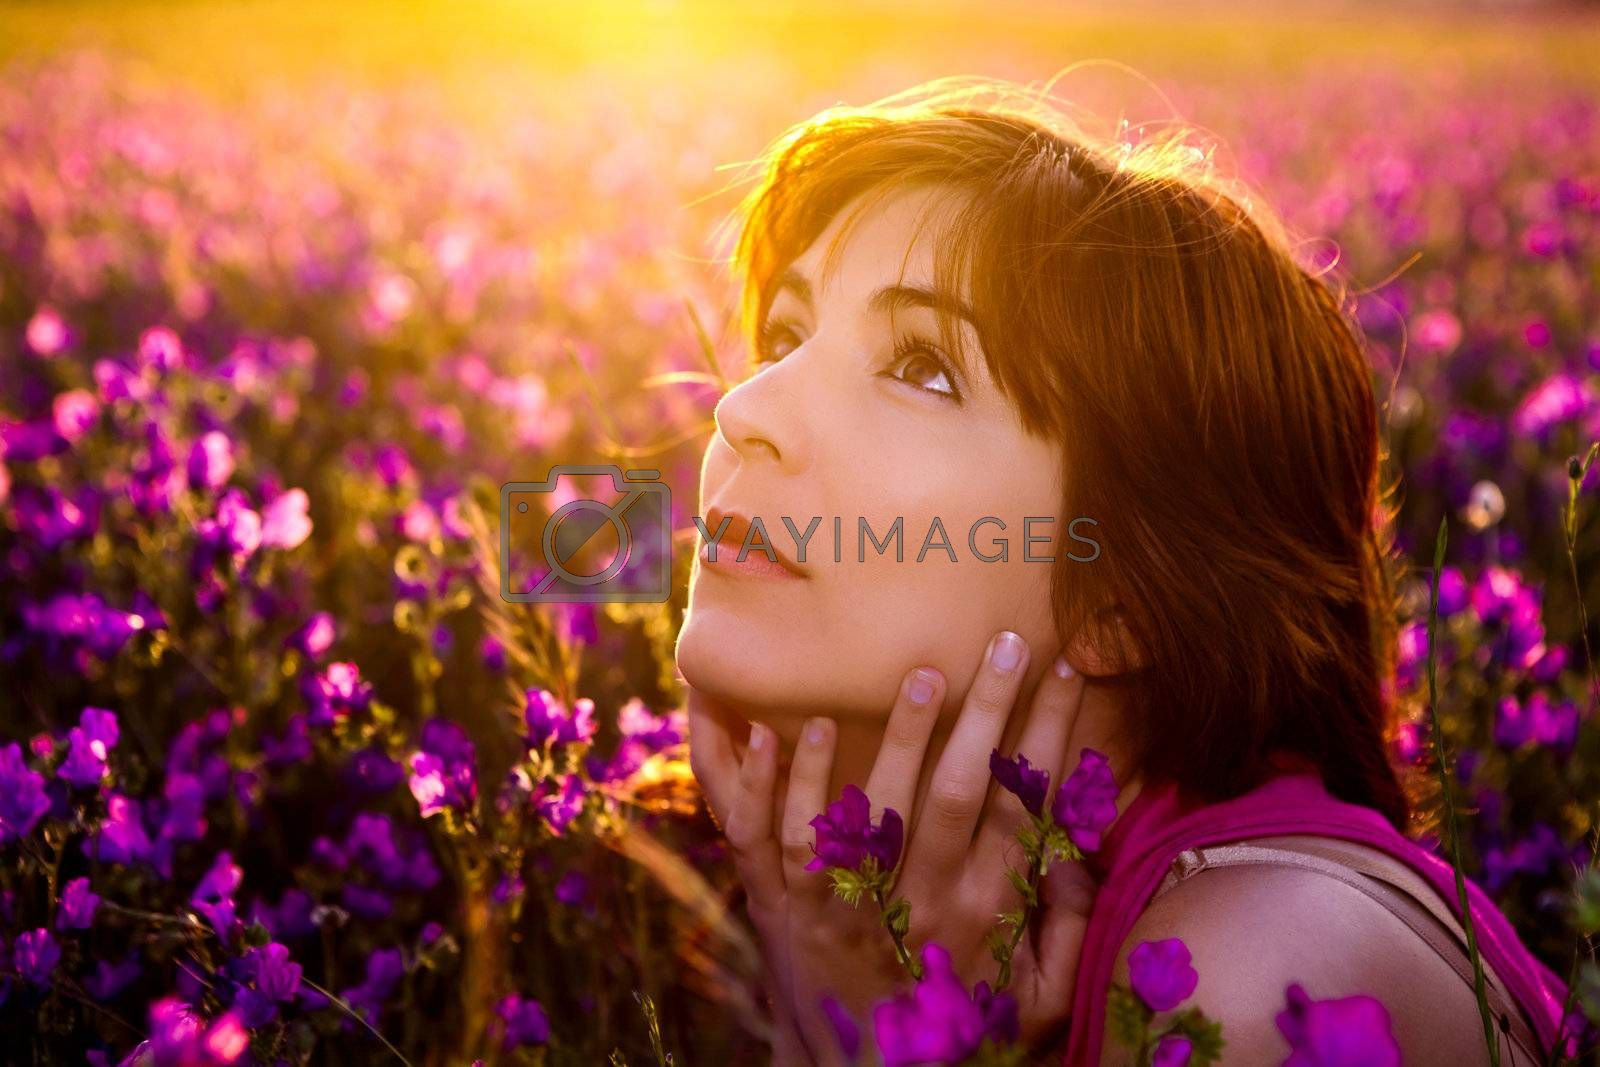 Royalty free image of Enjoy the nature by Iko